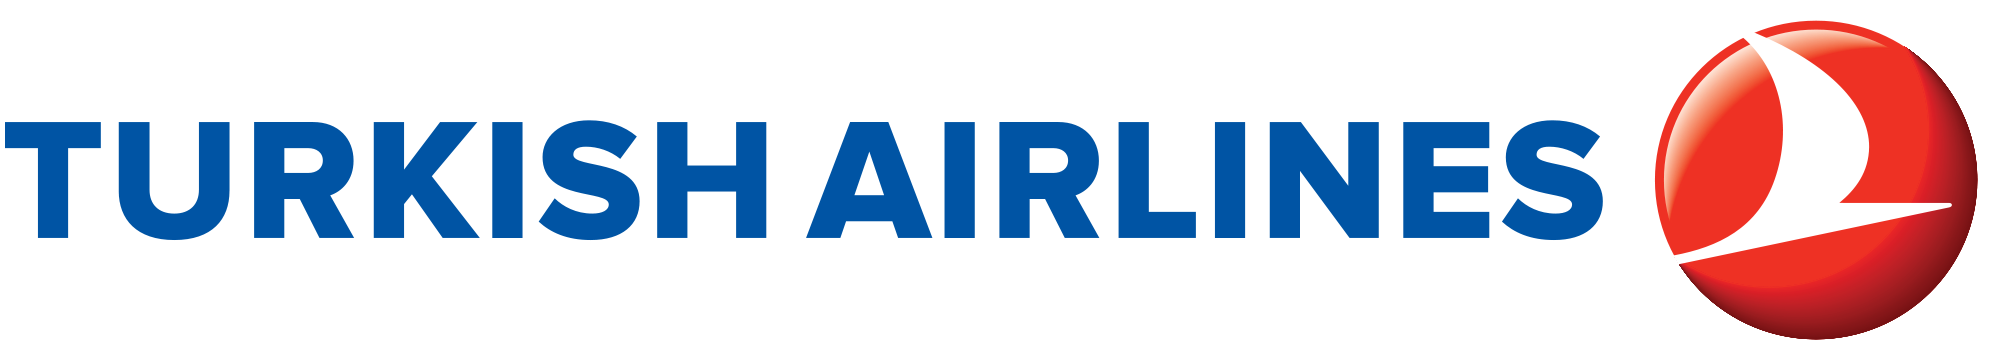 airlines logos png #2535